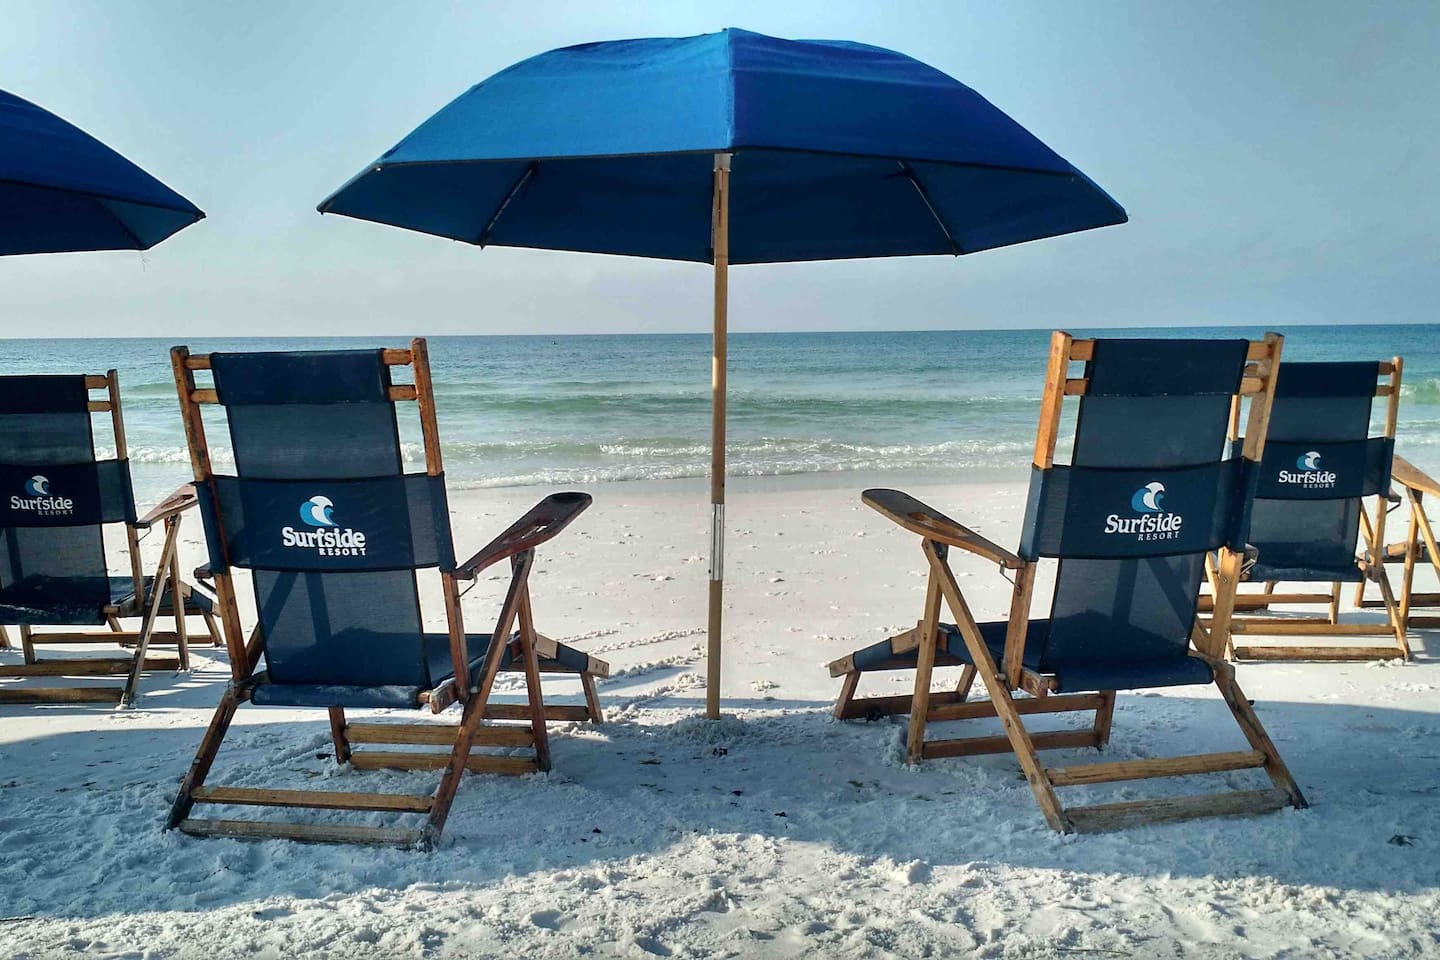 Chair and umbrella service available for rent.